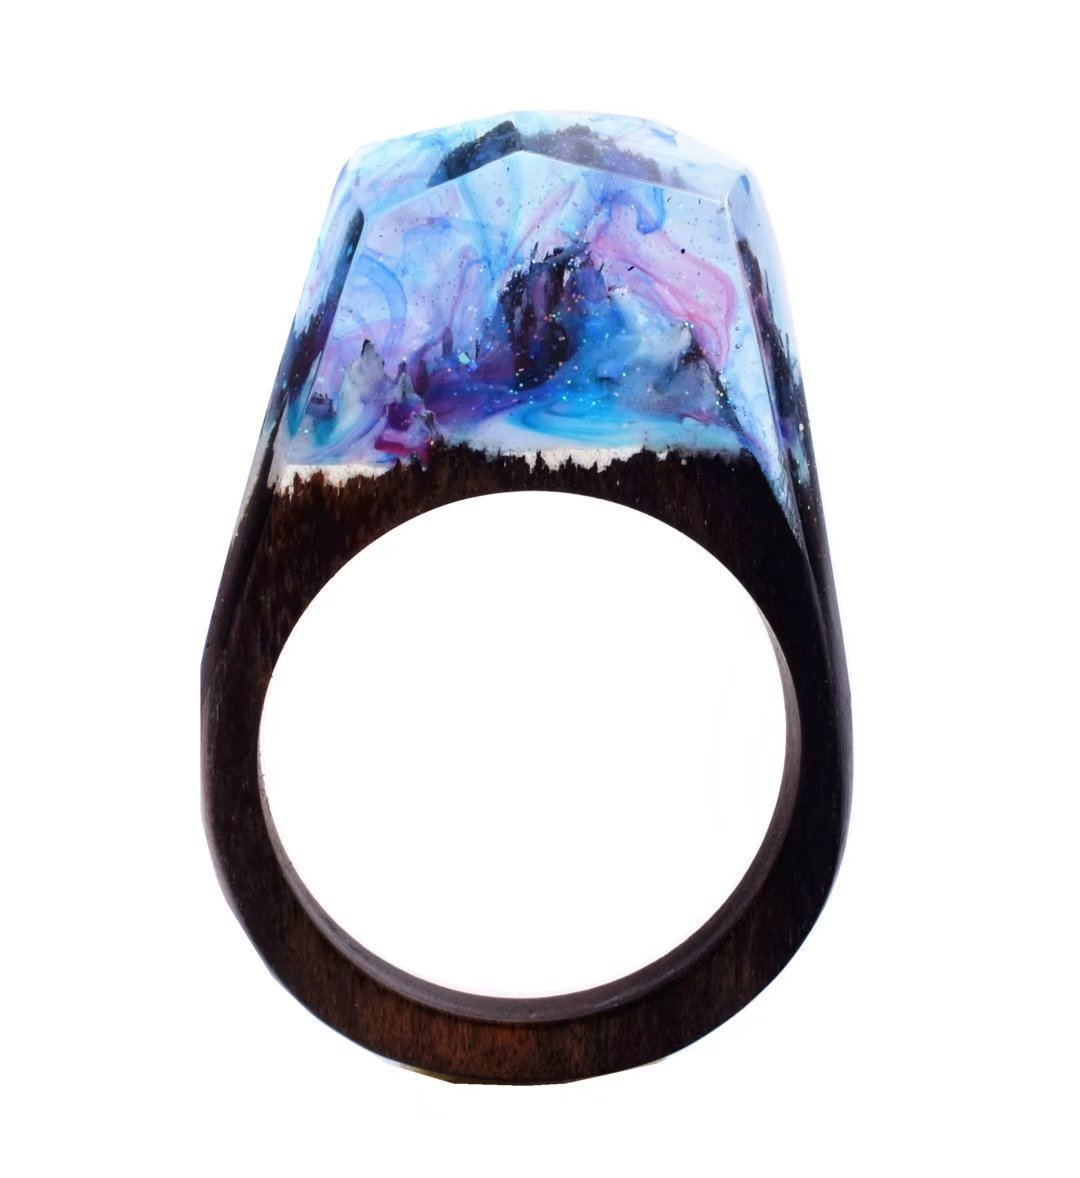 Heyou Love Handmade Wood Resin Ring With Secret Sky Landscape Inside Jewelry